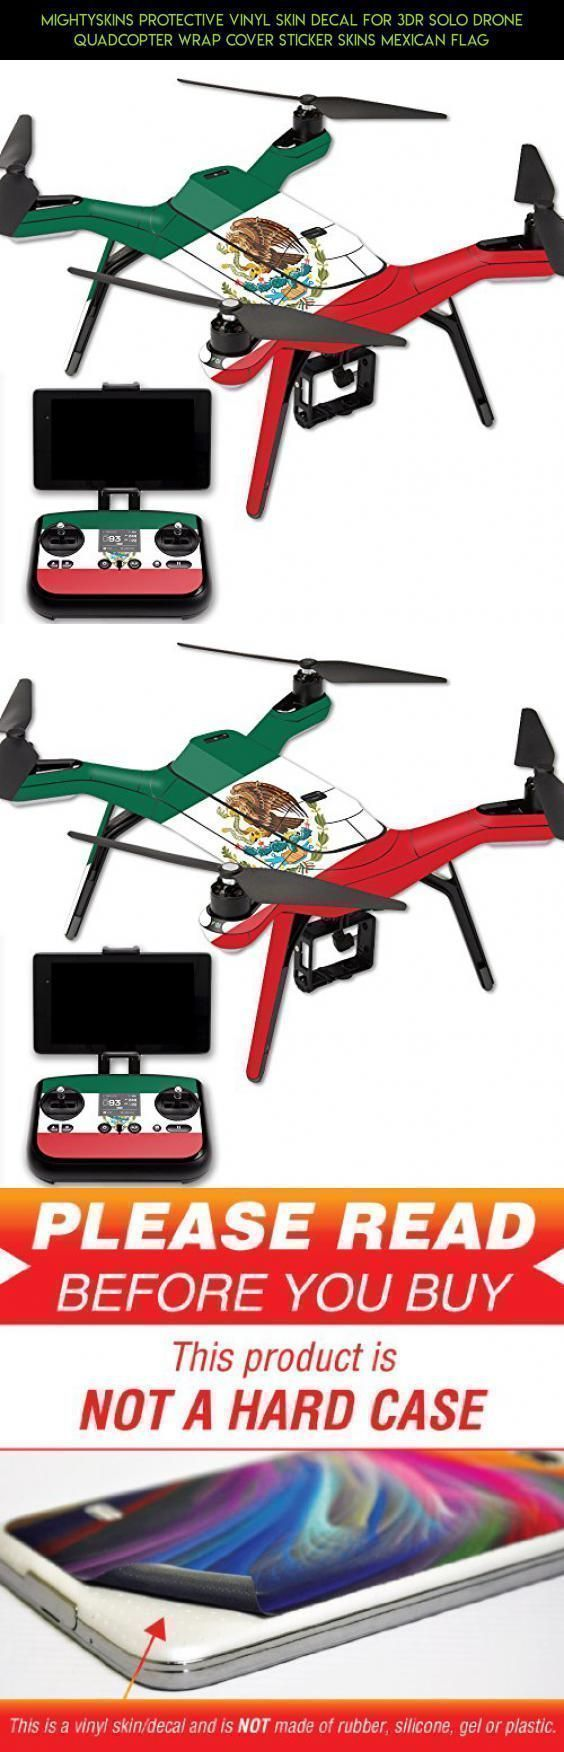 MightySkins Protective Vinyl Skin Decal for 3DR Solo Drone Quadcopter wrap cover sticker skins Mexican Flag #camera #wrap #products #parts #plans #3dr #technology #kit #drone #racing #gadgets #tech #shopping #fpv